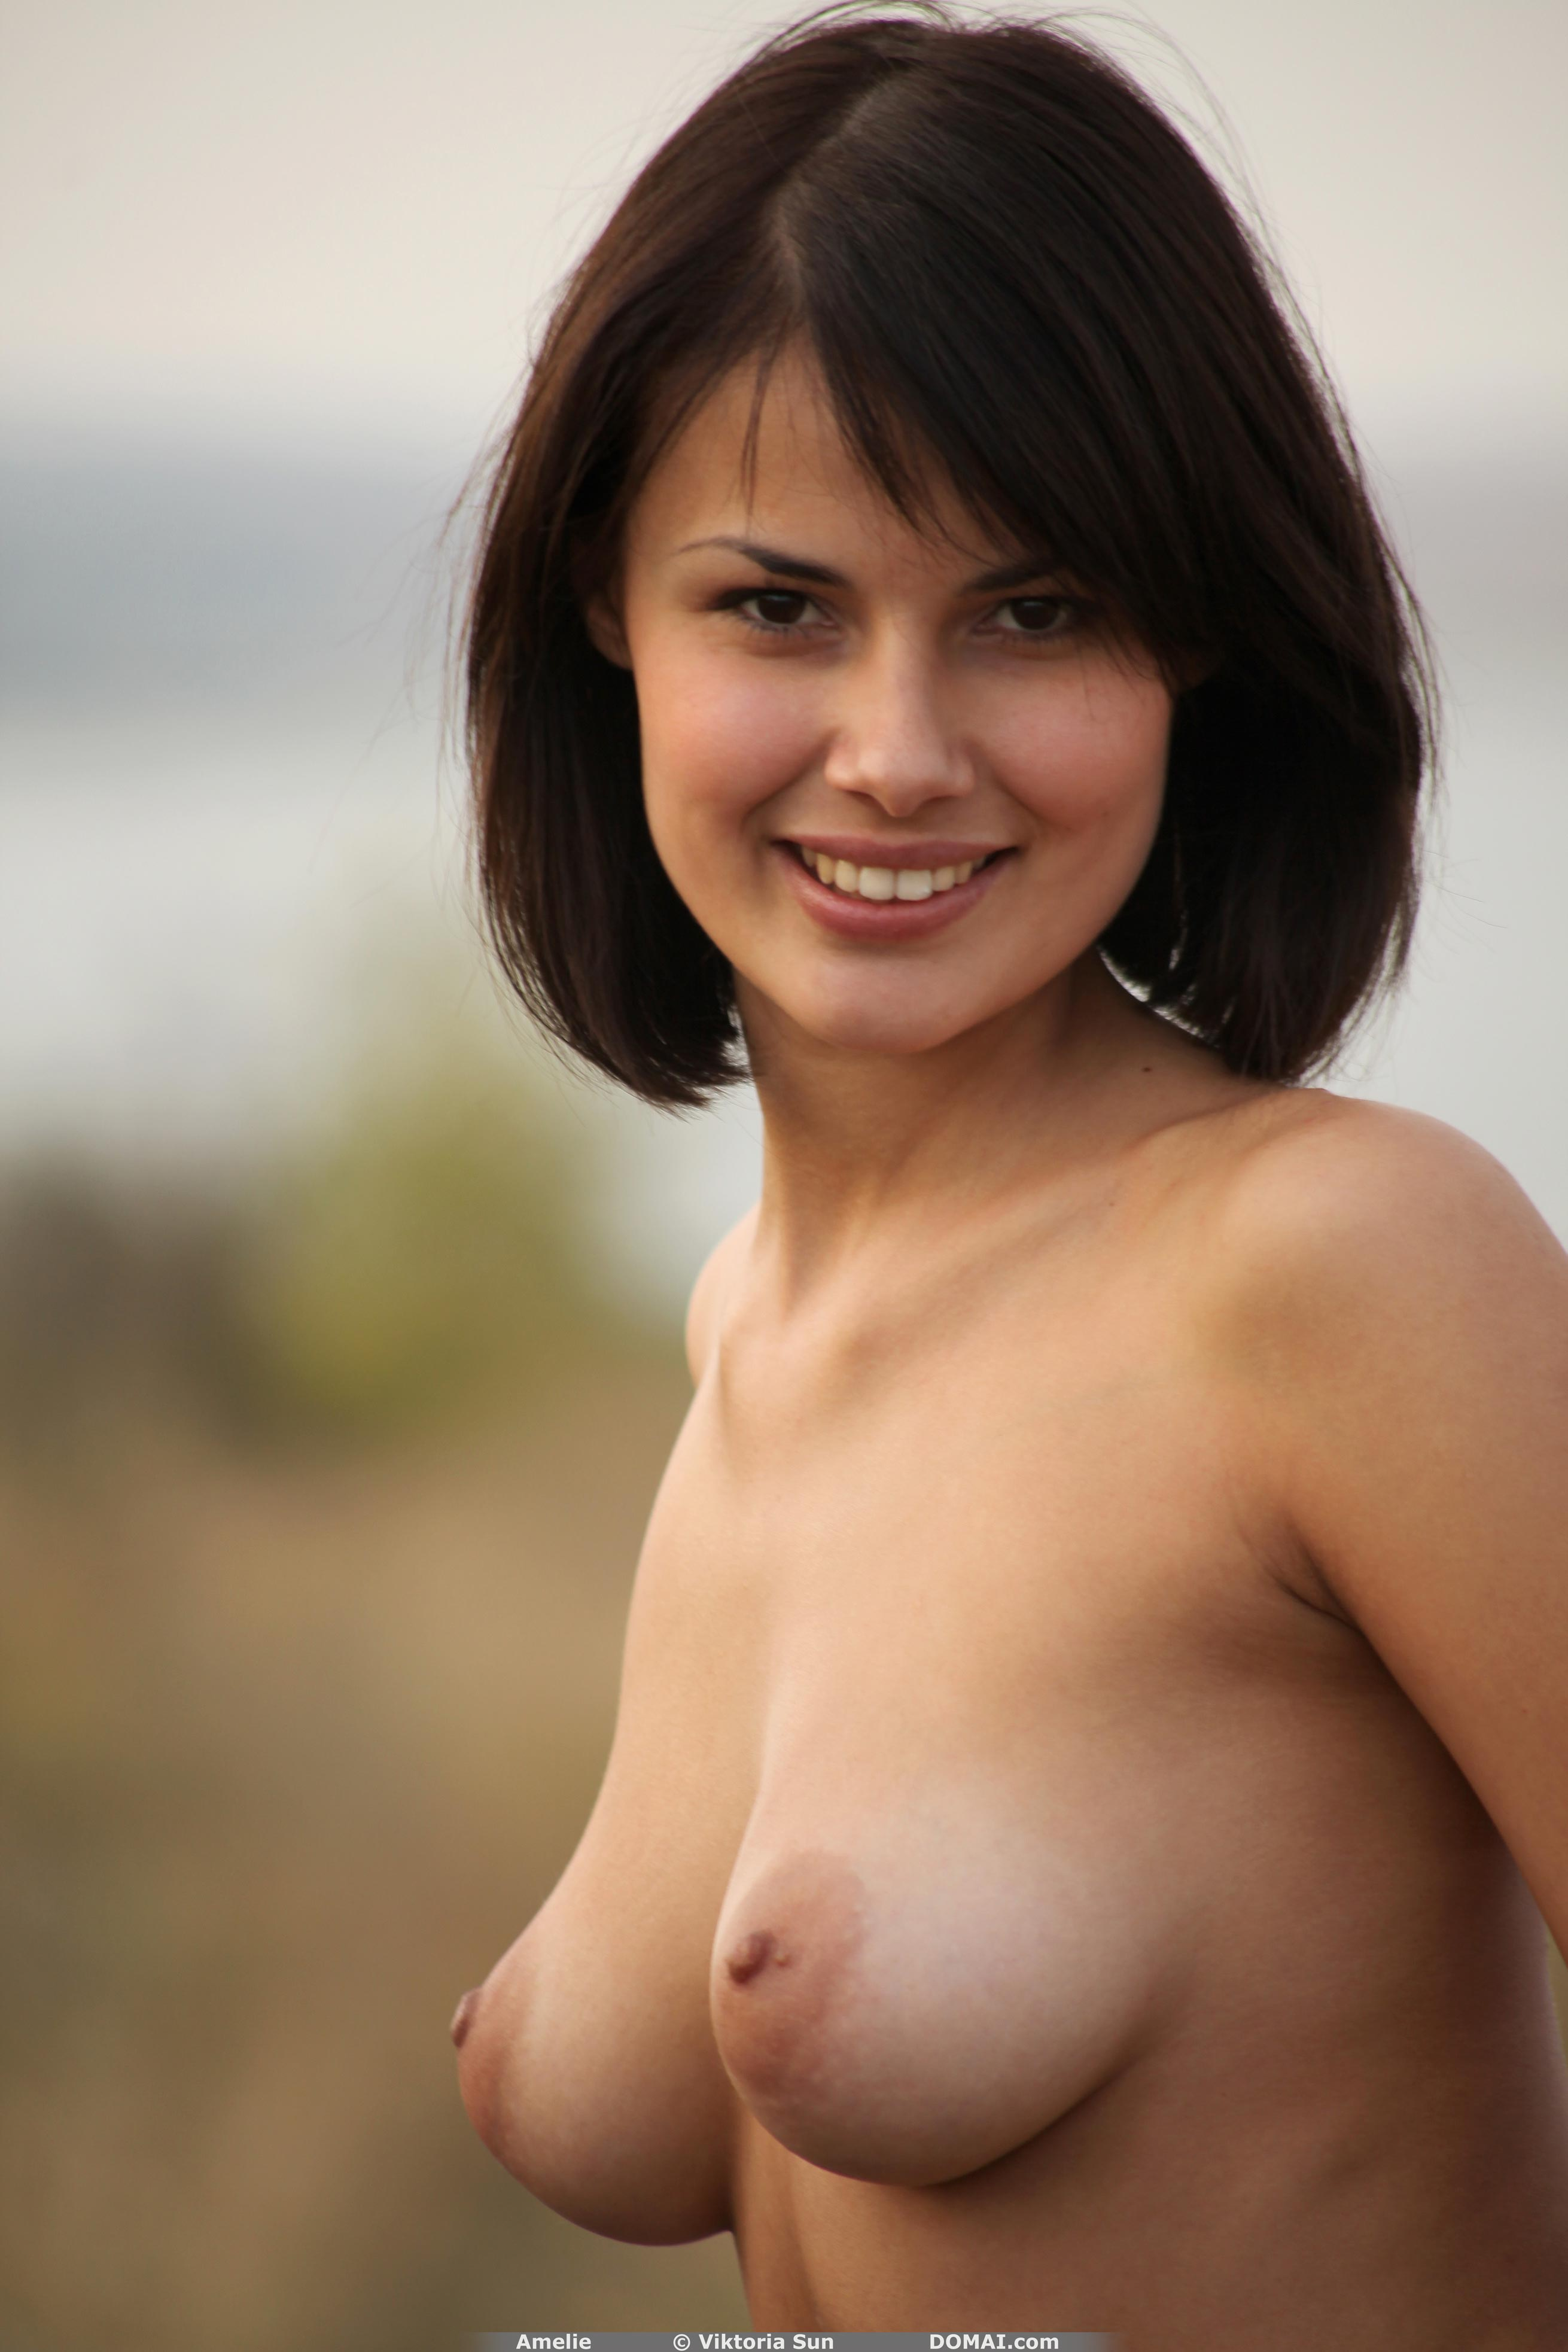 cute-smile-nude-women-penetration-with